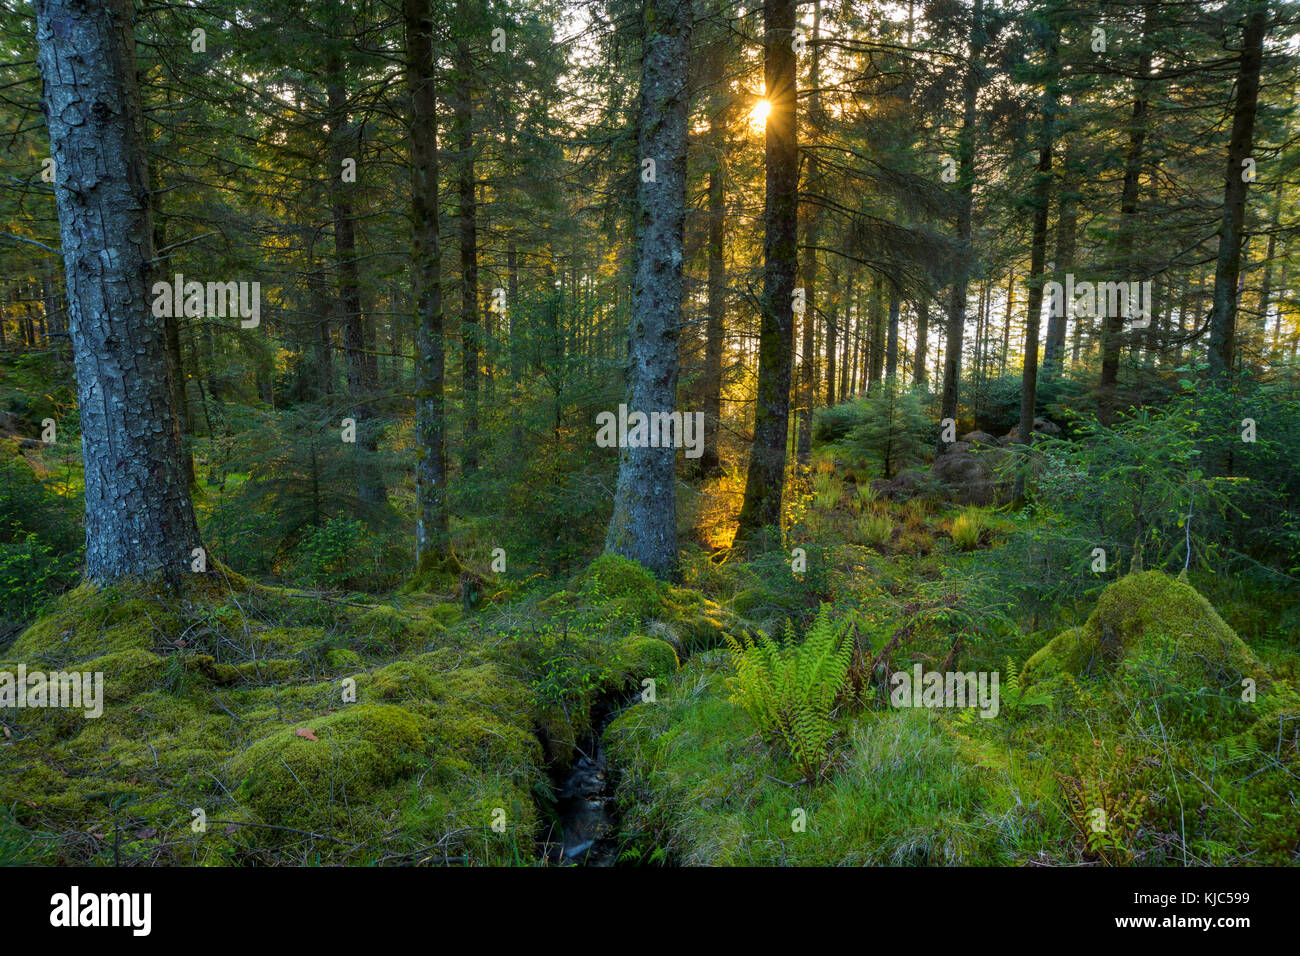 Sun shining through mossy conifer forest at sunset at Loch Awe in Argyll and Bute, Scotland - Stock Image